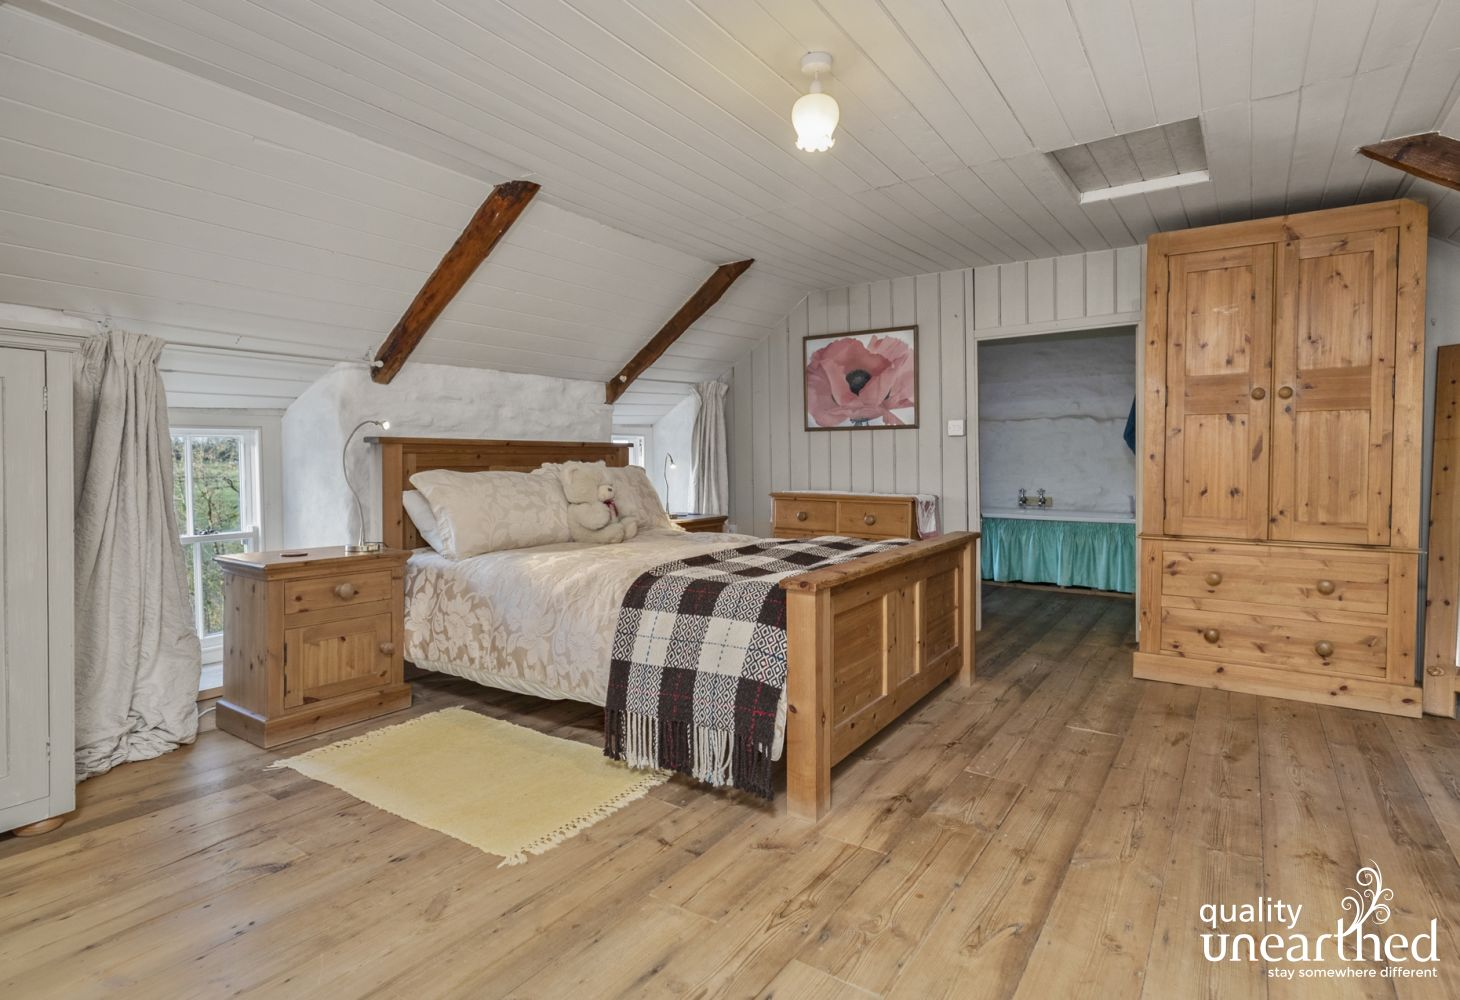 Llanger holiday cottage - master bedroom wardrobe 2 wooden chests bedside cupboards ensuite